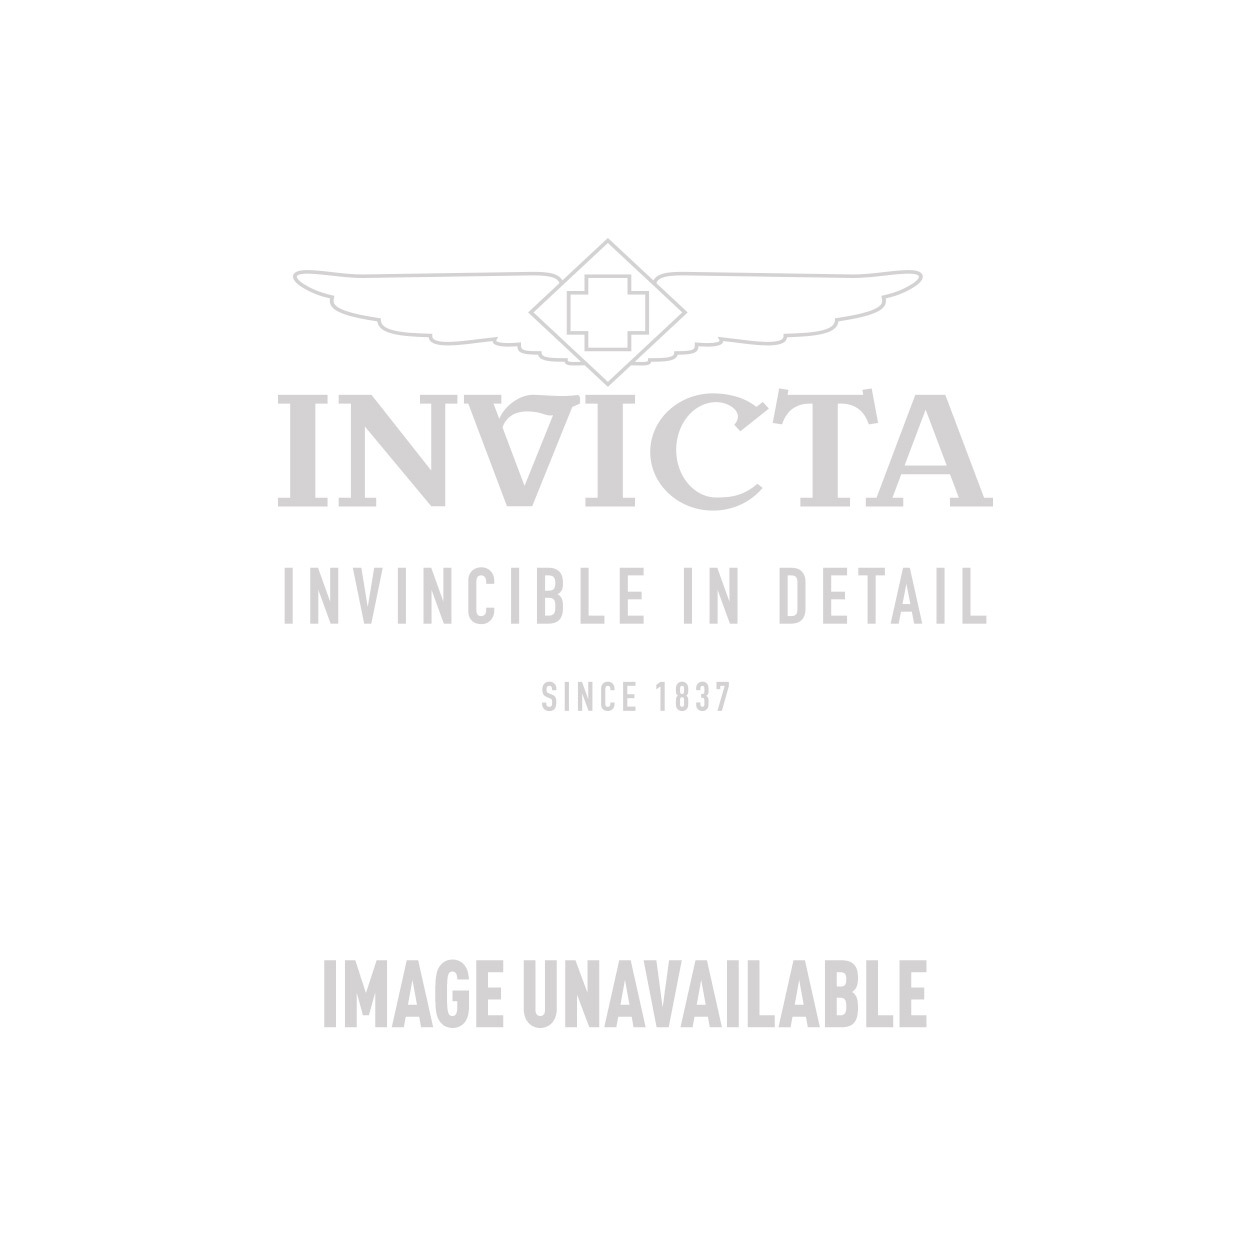 Invicta I-Force Swiss Movement Quartz Watch - Stainless Steel case with Black tone Leather band - Model 10490